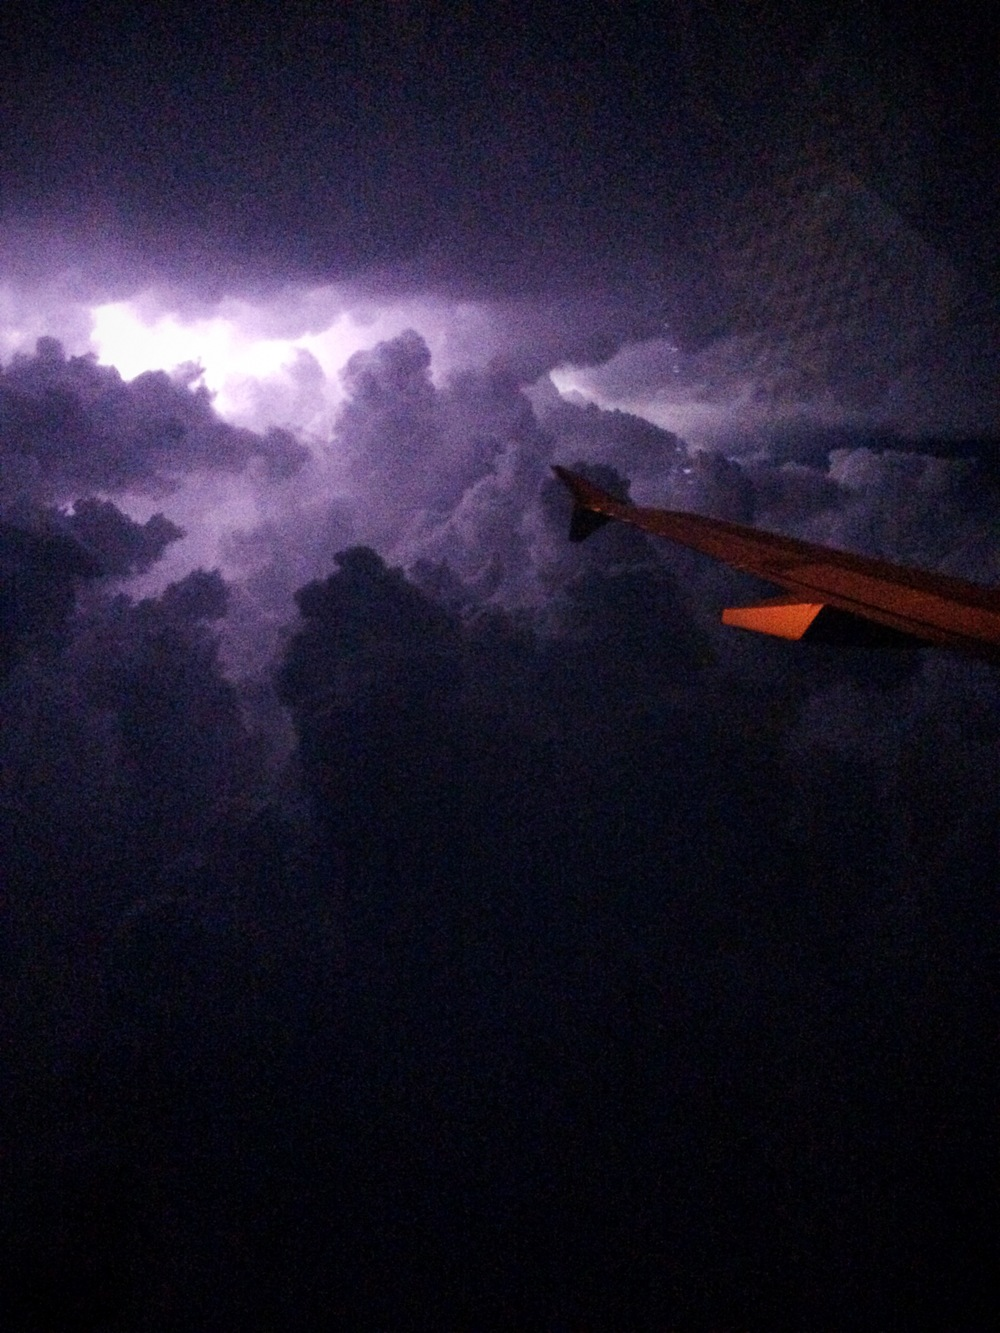 Flying next to this lightning storm almost made me pee my pants in-flight, but I did get some incredible iPhone shots.